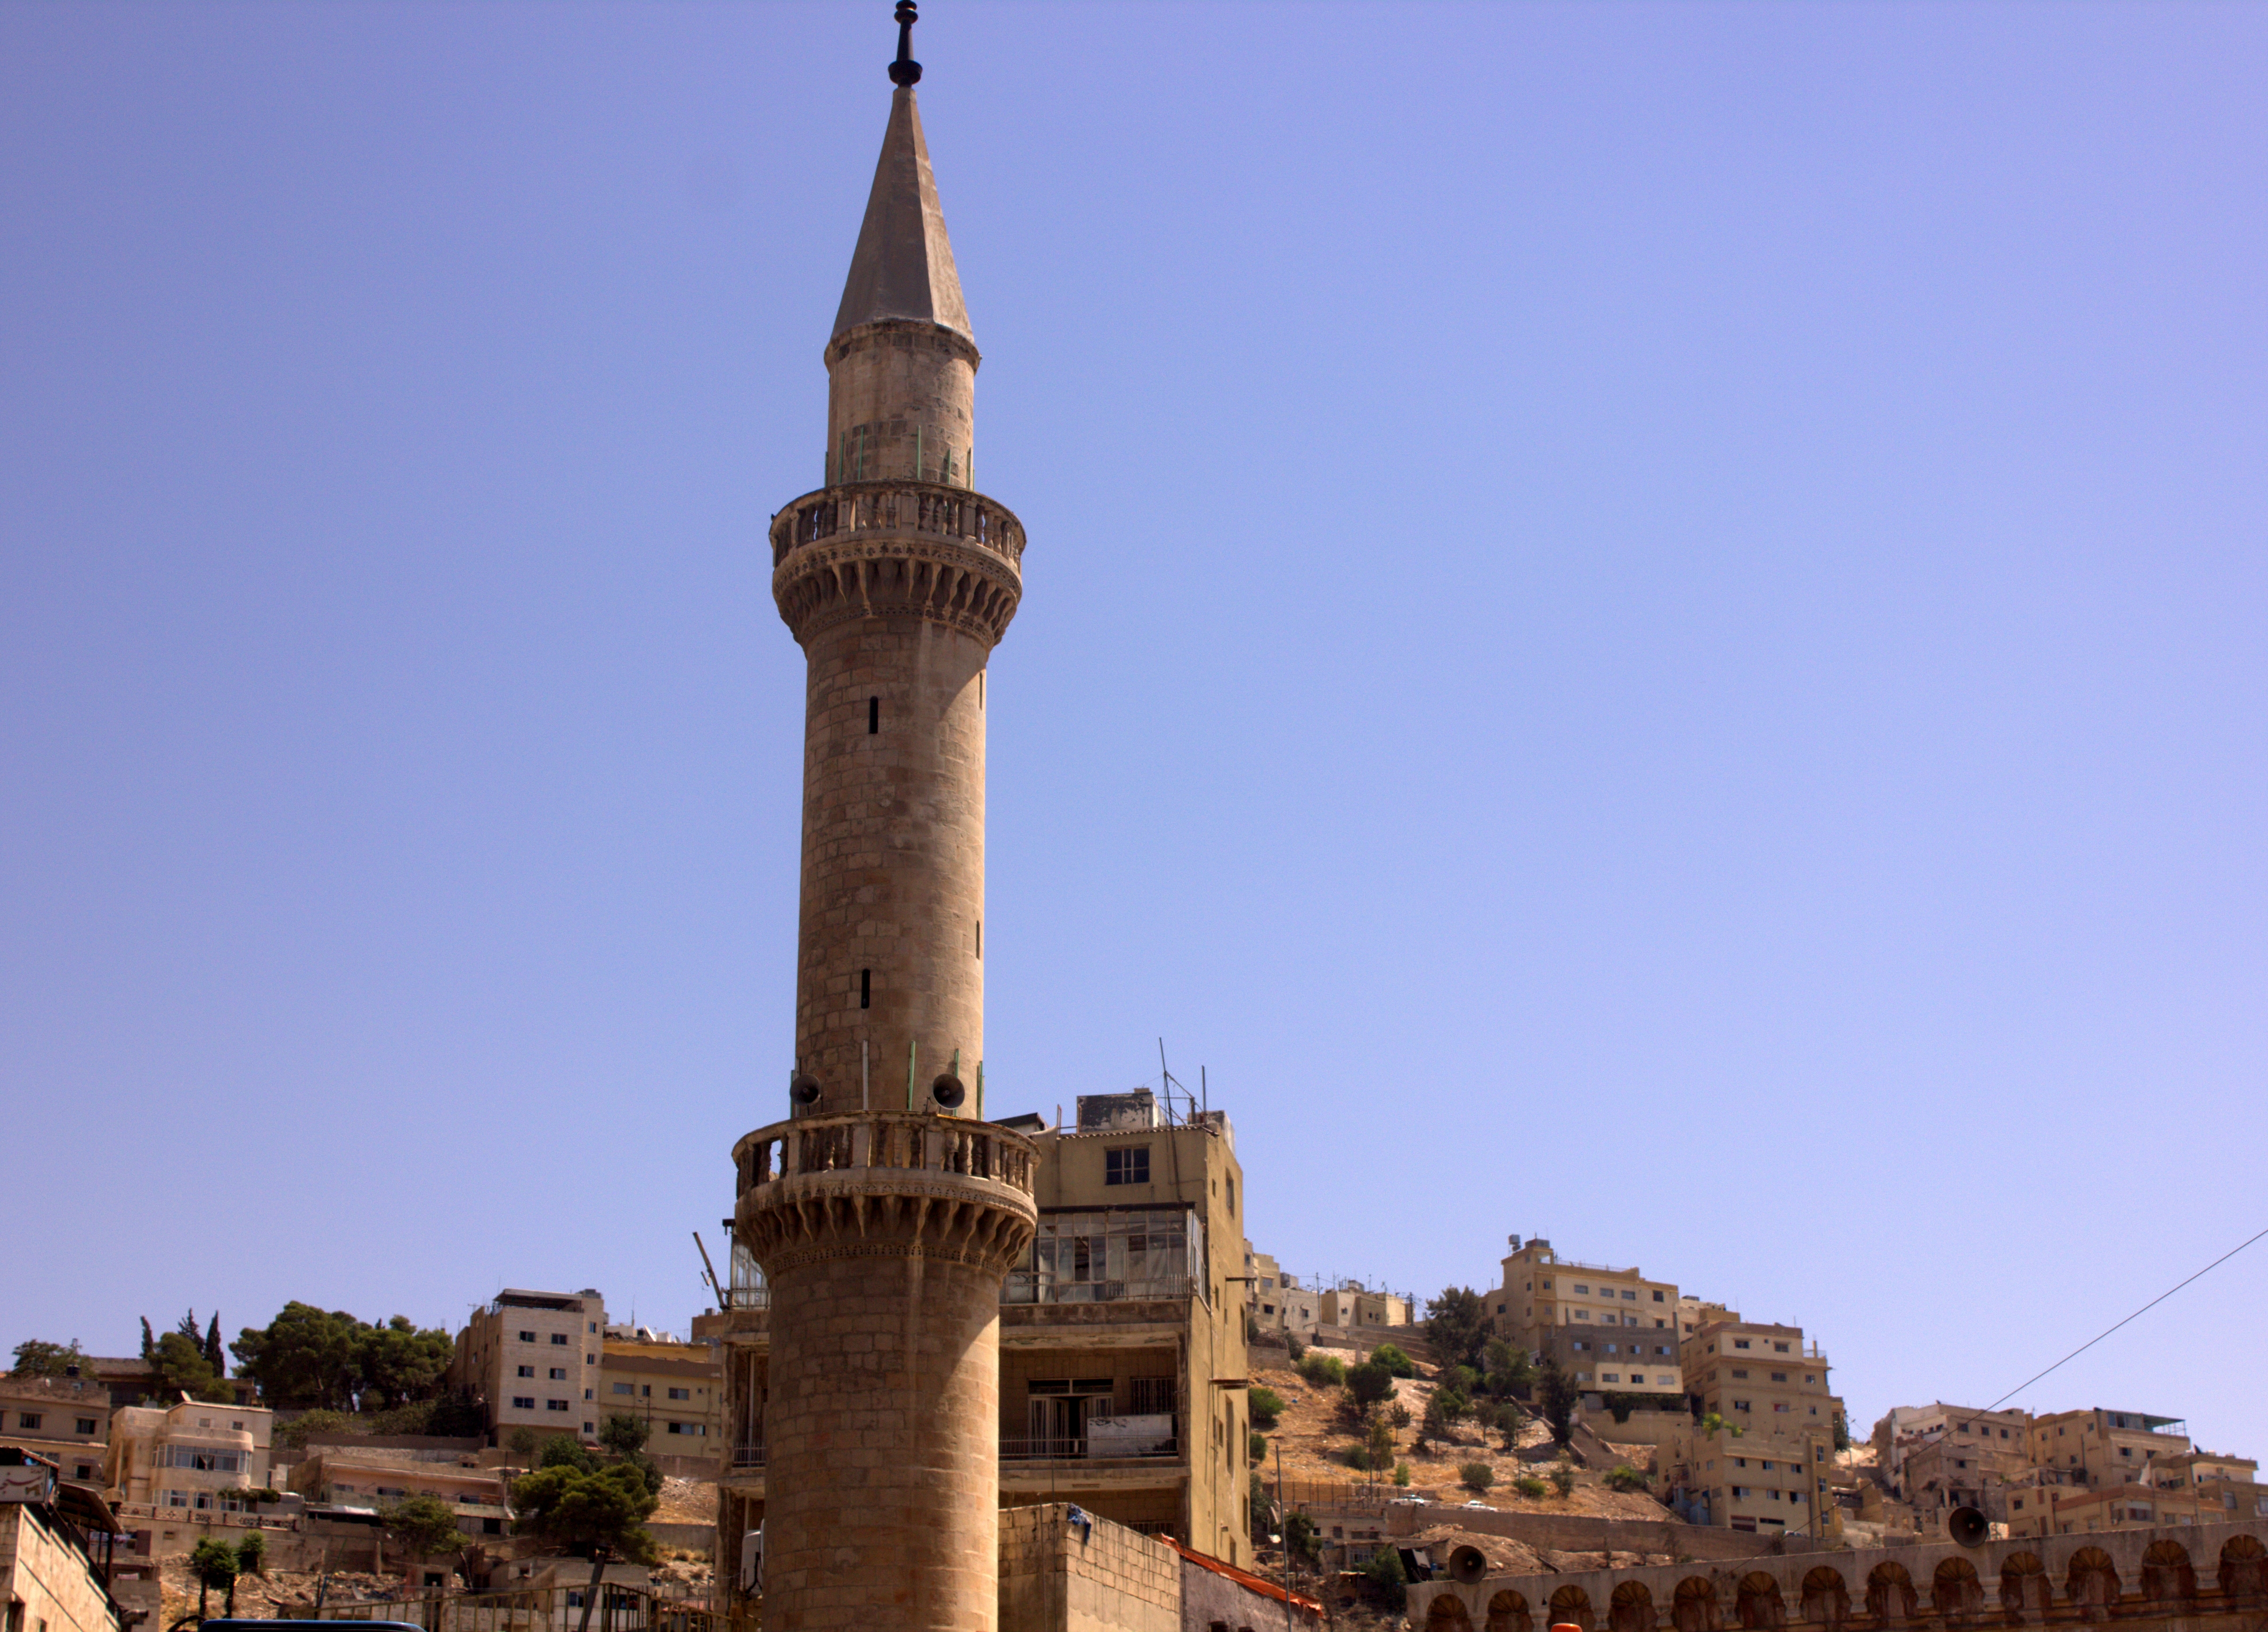 Husseini Mosque stands out